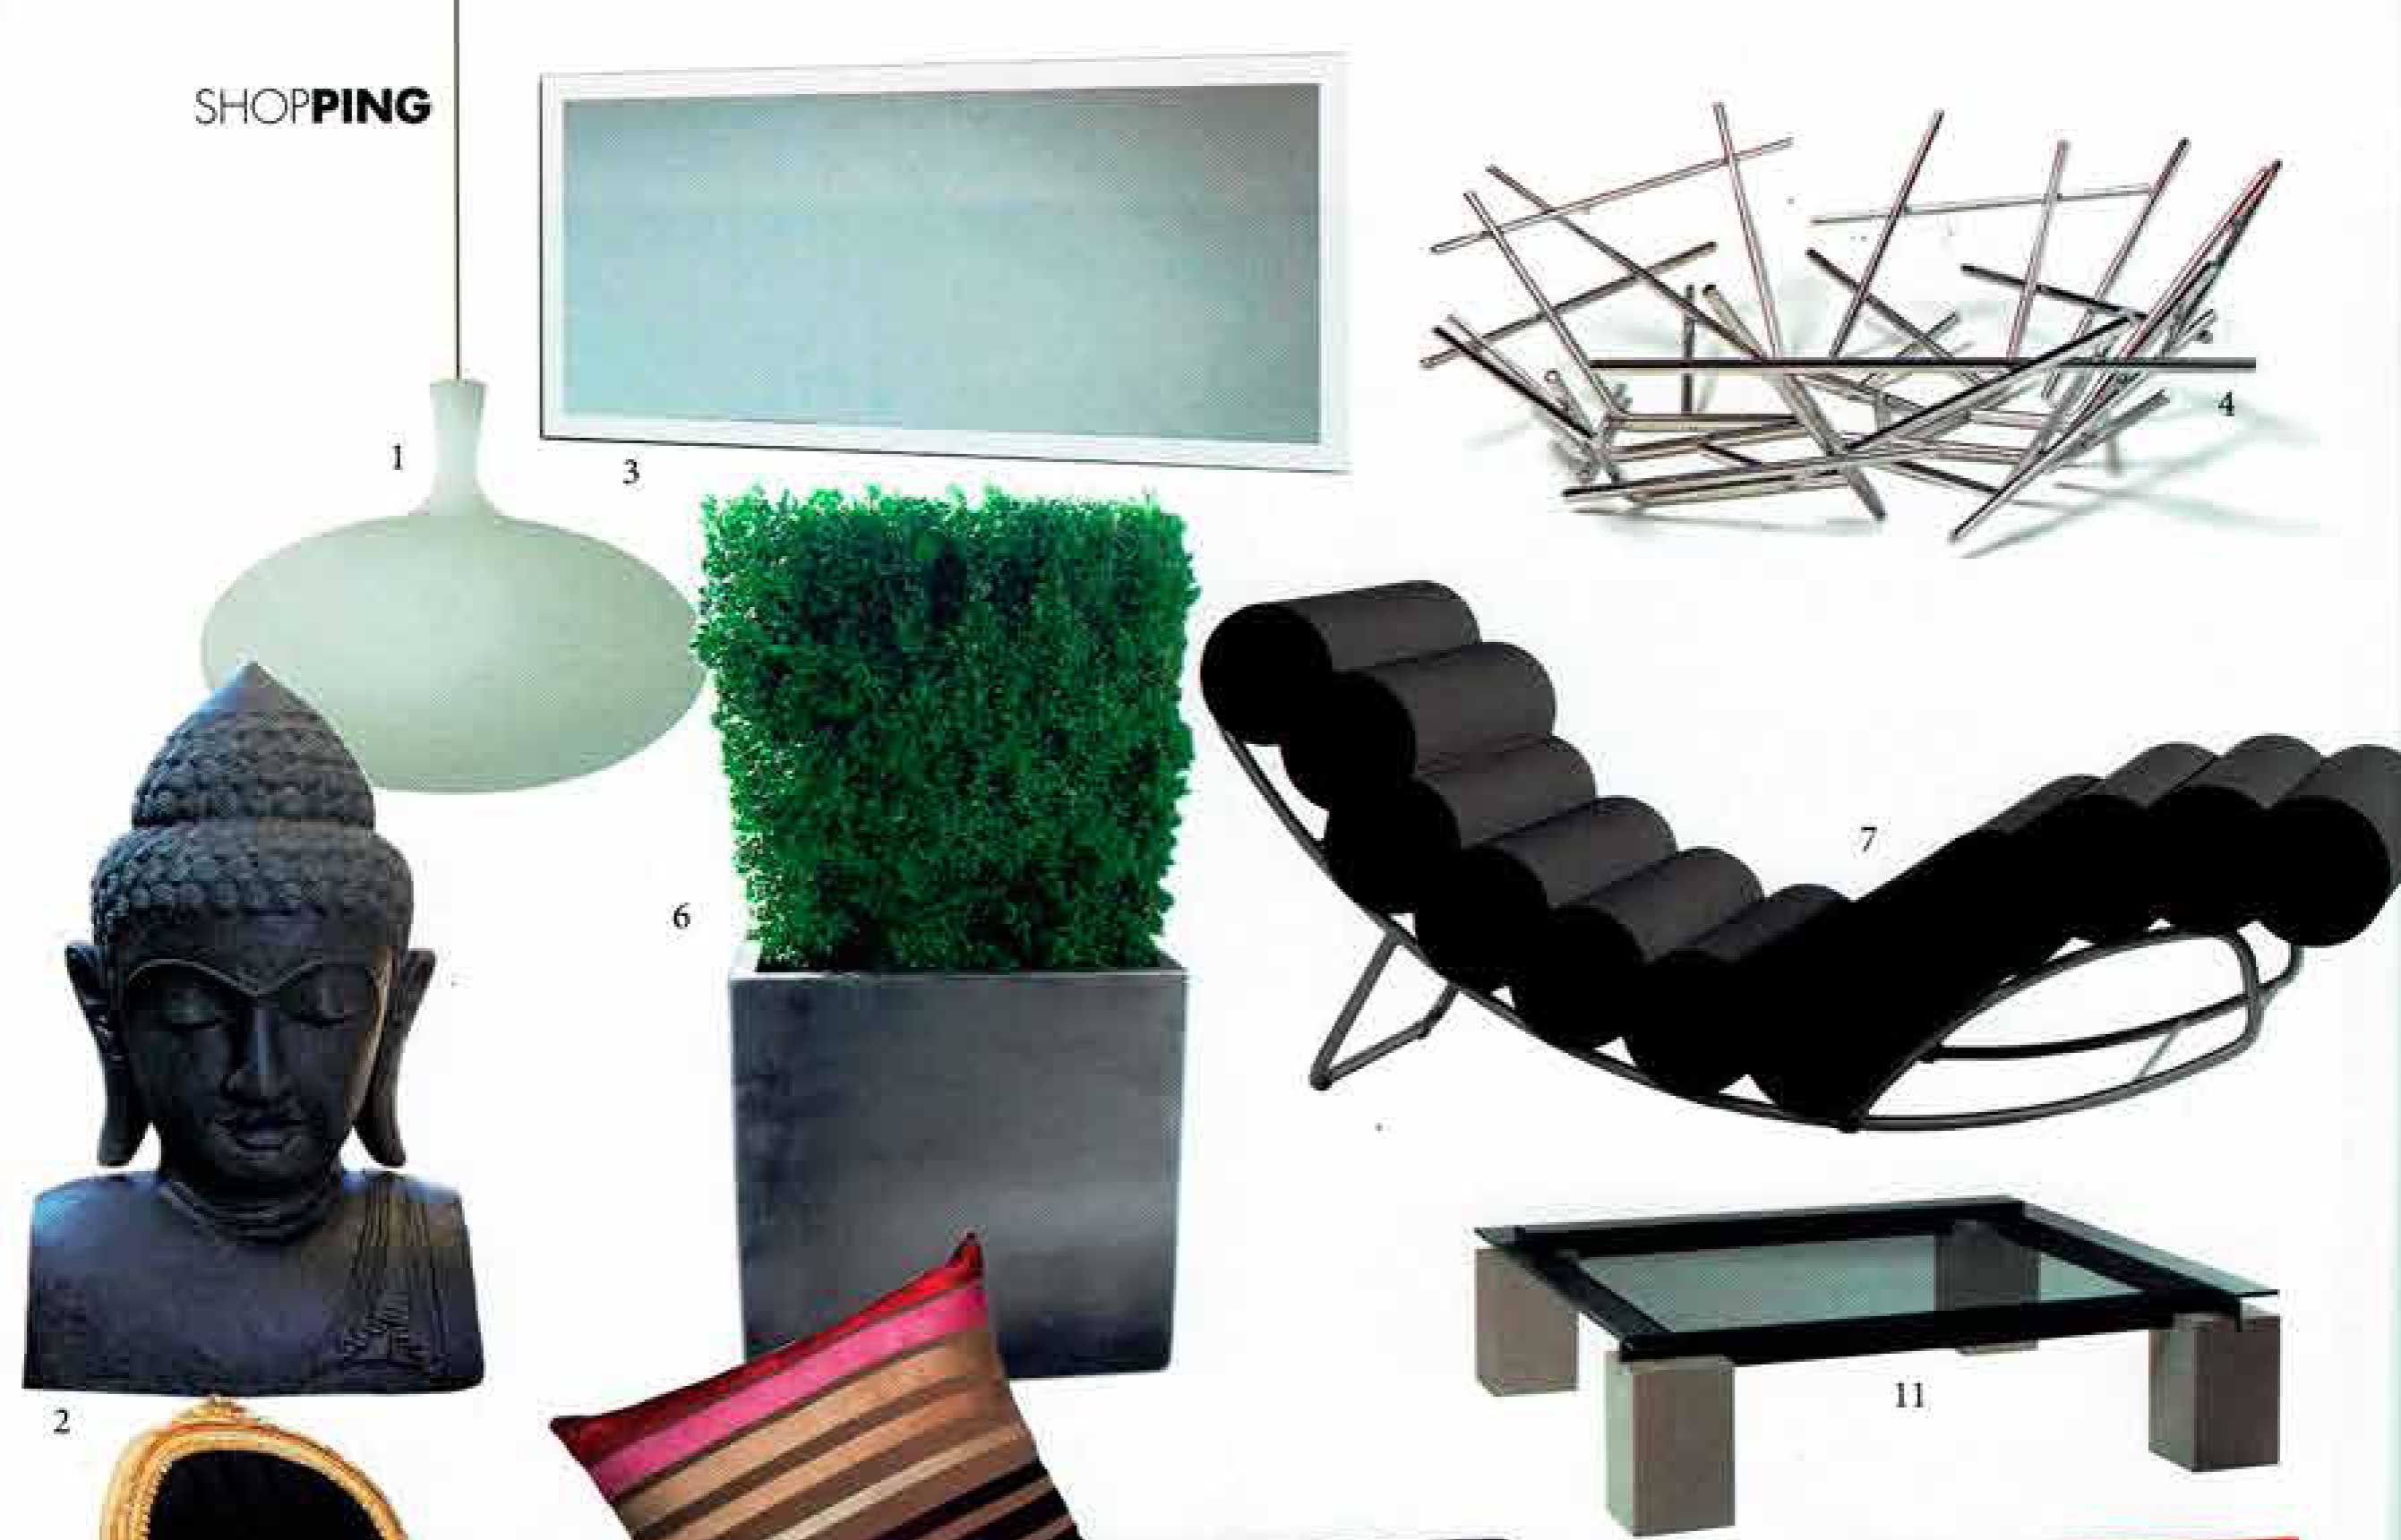 atelier so green jardini re image 39 in publication maison. Black Bedroom Furniture Sets. Home Design Ideas